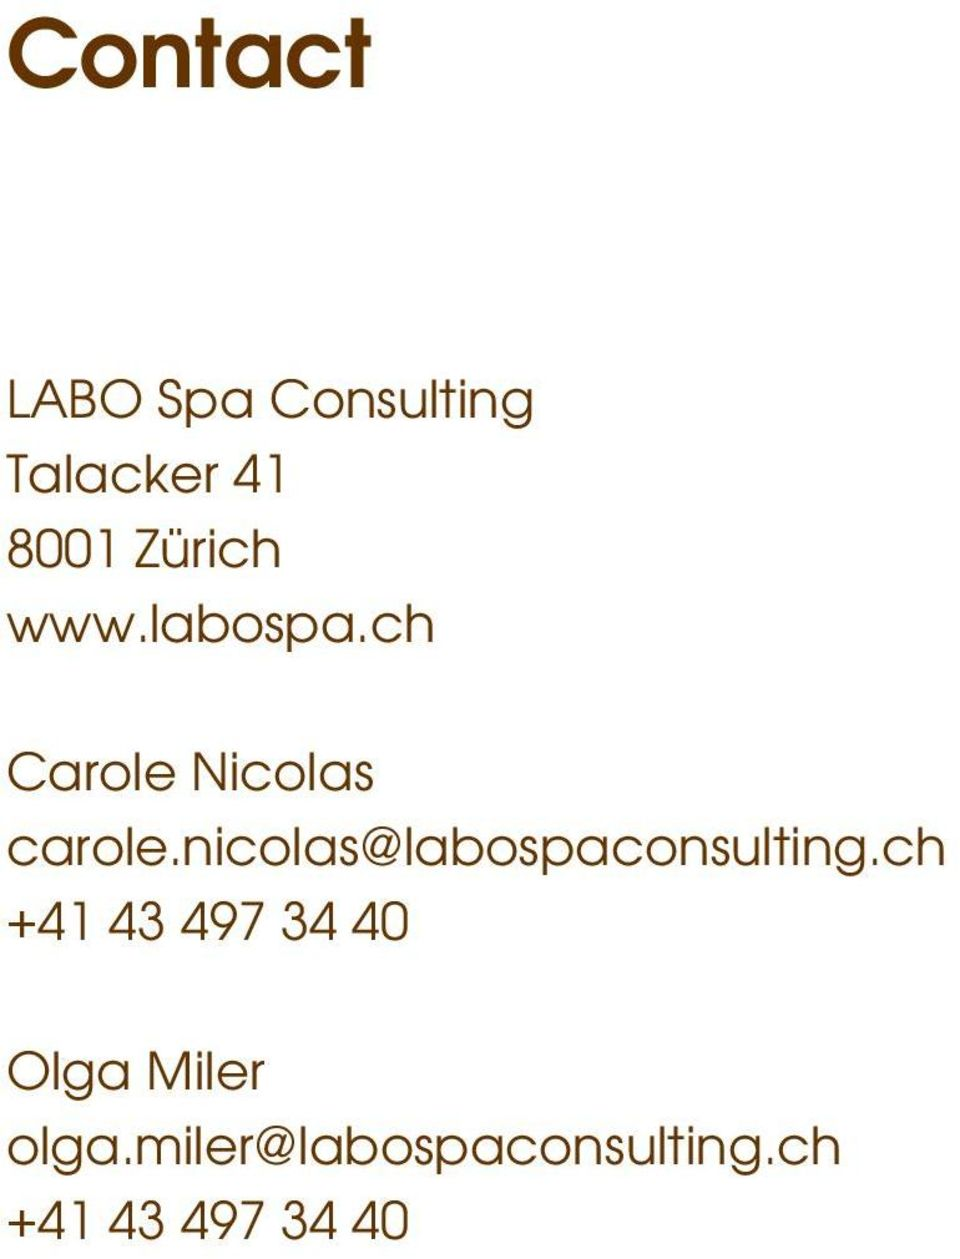 nicolas@labospaconsulting.